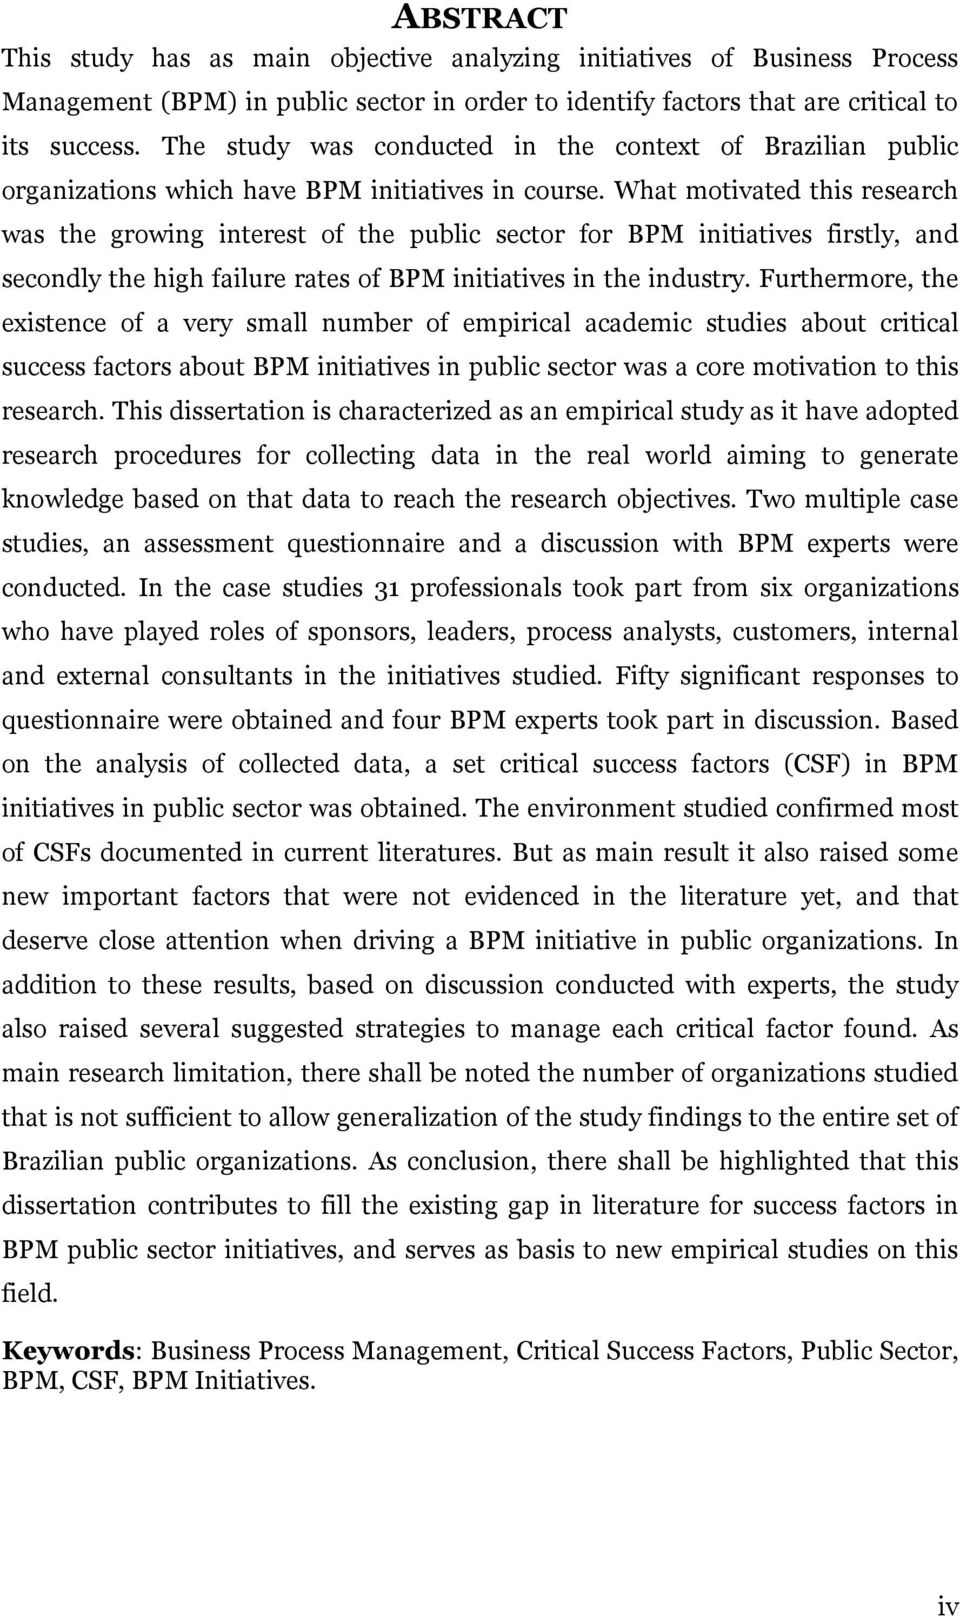 What motivated this research was the growing interest of the public sector for BPM initiatives firstly, and secondly the high failure rates of BPM initiatives in the industry.